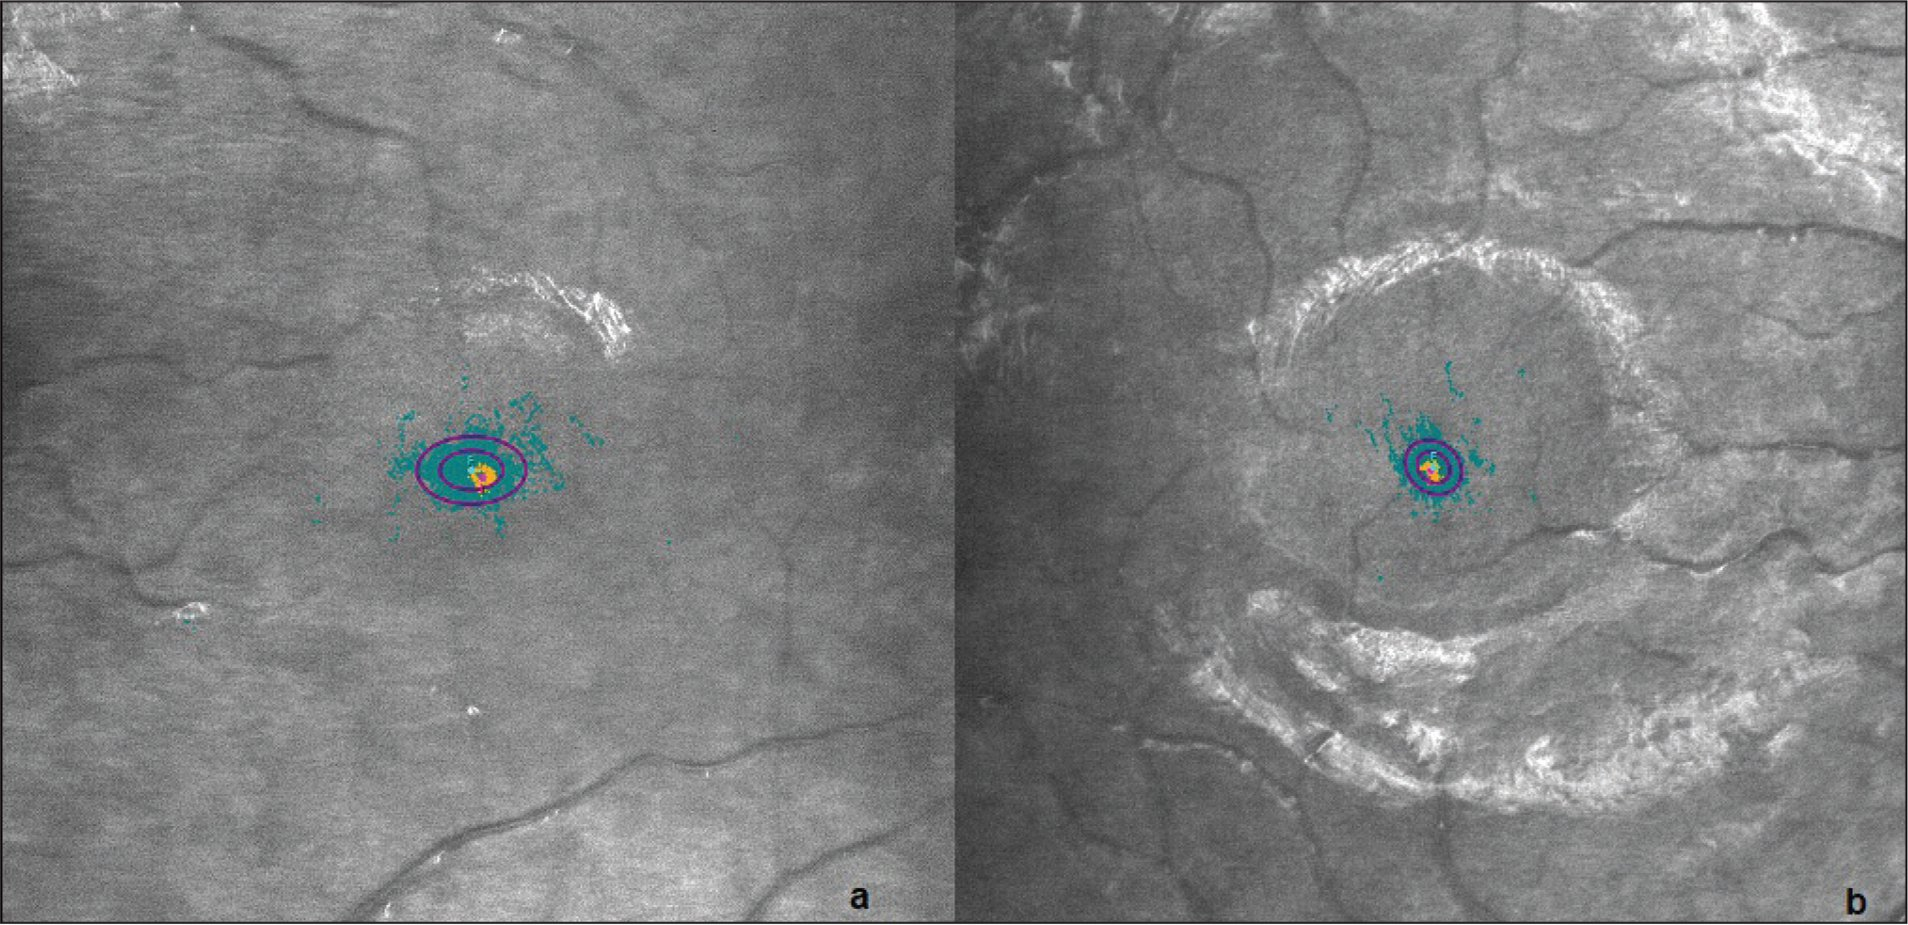 Fixation pattern of the (A) amblyopic eye and (B) non-amblyopic eye of a patient. Bivariate contour ellipse area for 63% of points (BCEA63) was 0.7°2 for the amblyopic eye and 0.4°2 for the non-amblyopic eye. Bivariate contour ellipse area for 95% of points (BCEA95) was 2.1°2 for the amblyopic eye and 1.3°2 for the non-amblyopic eye.